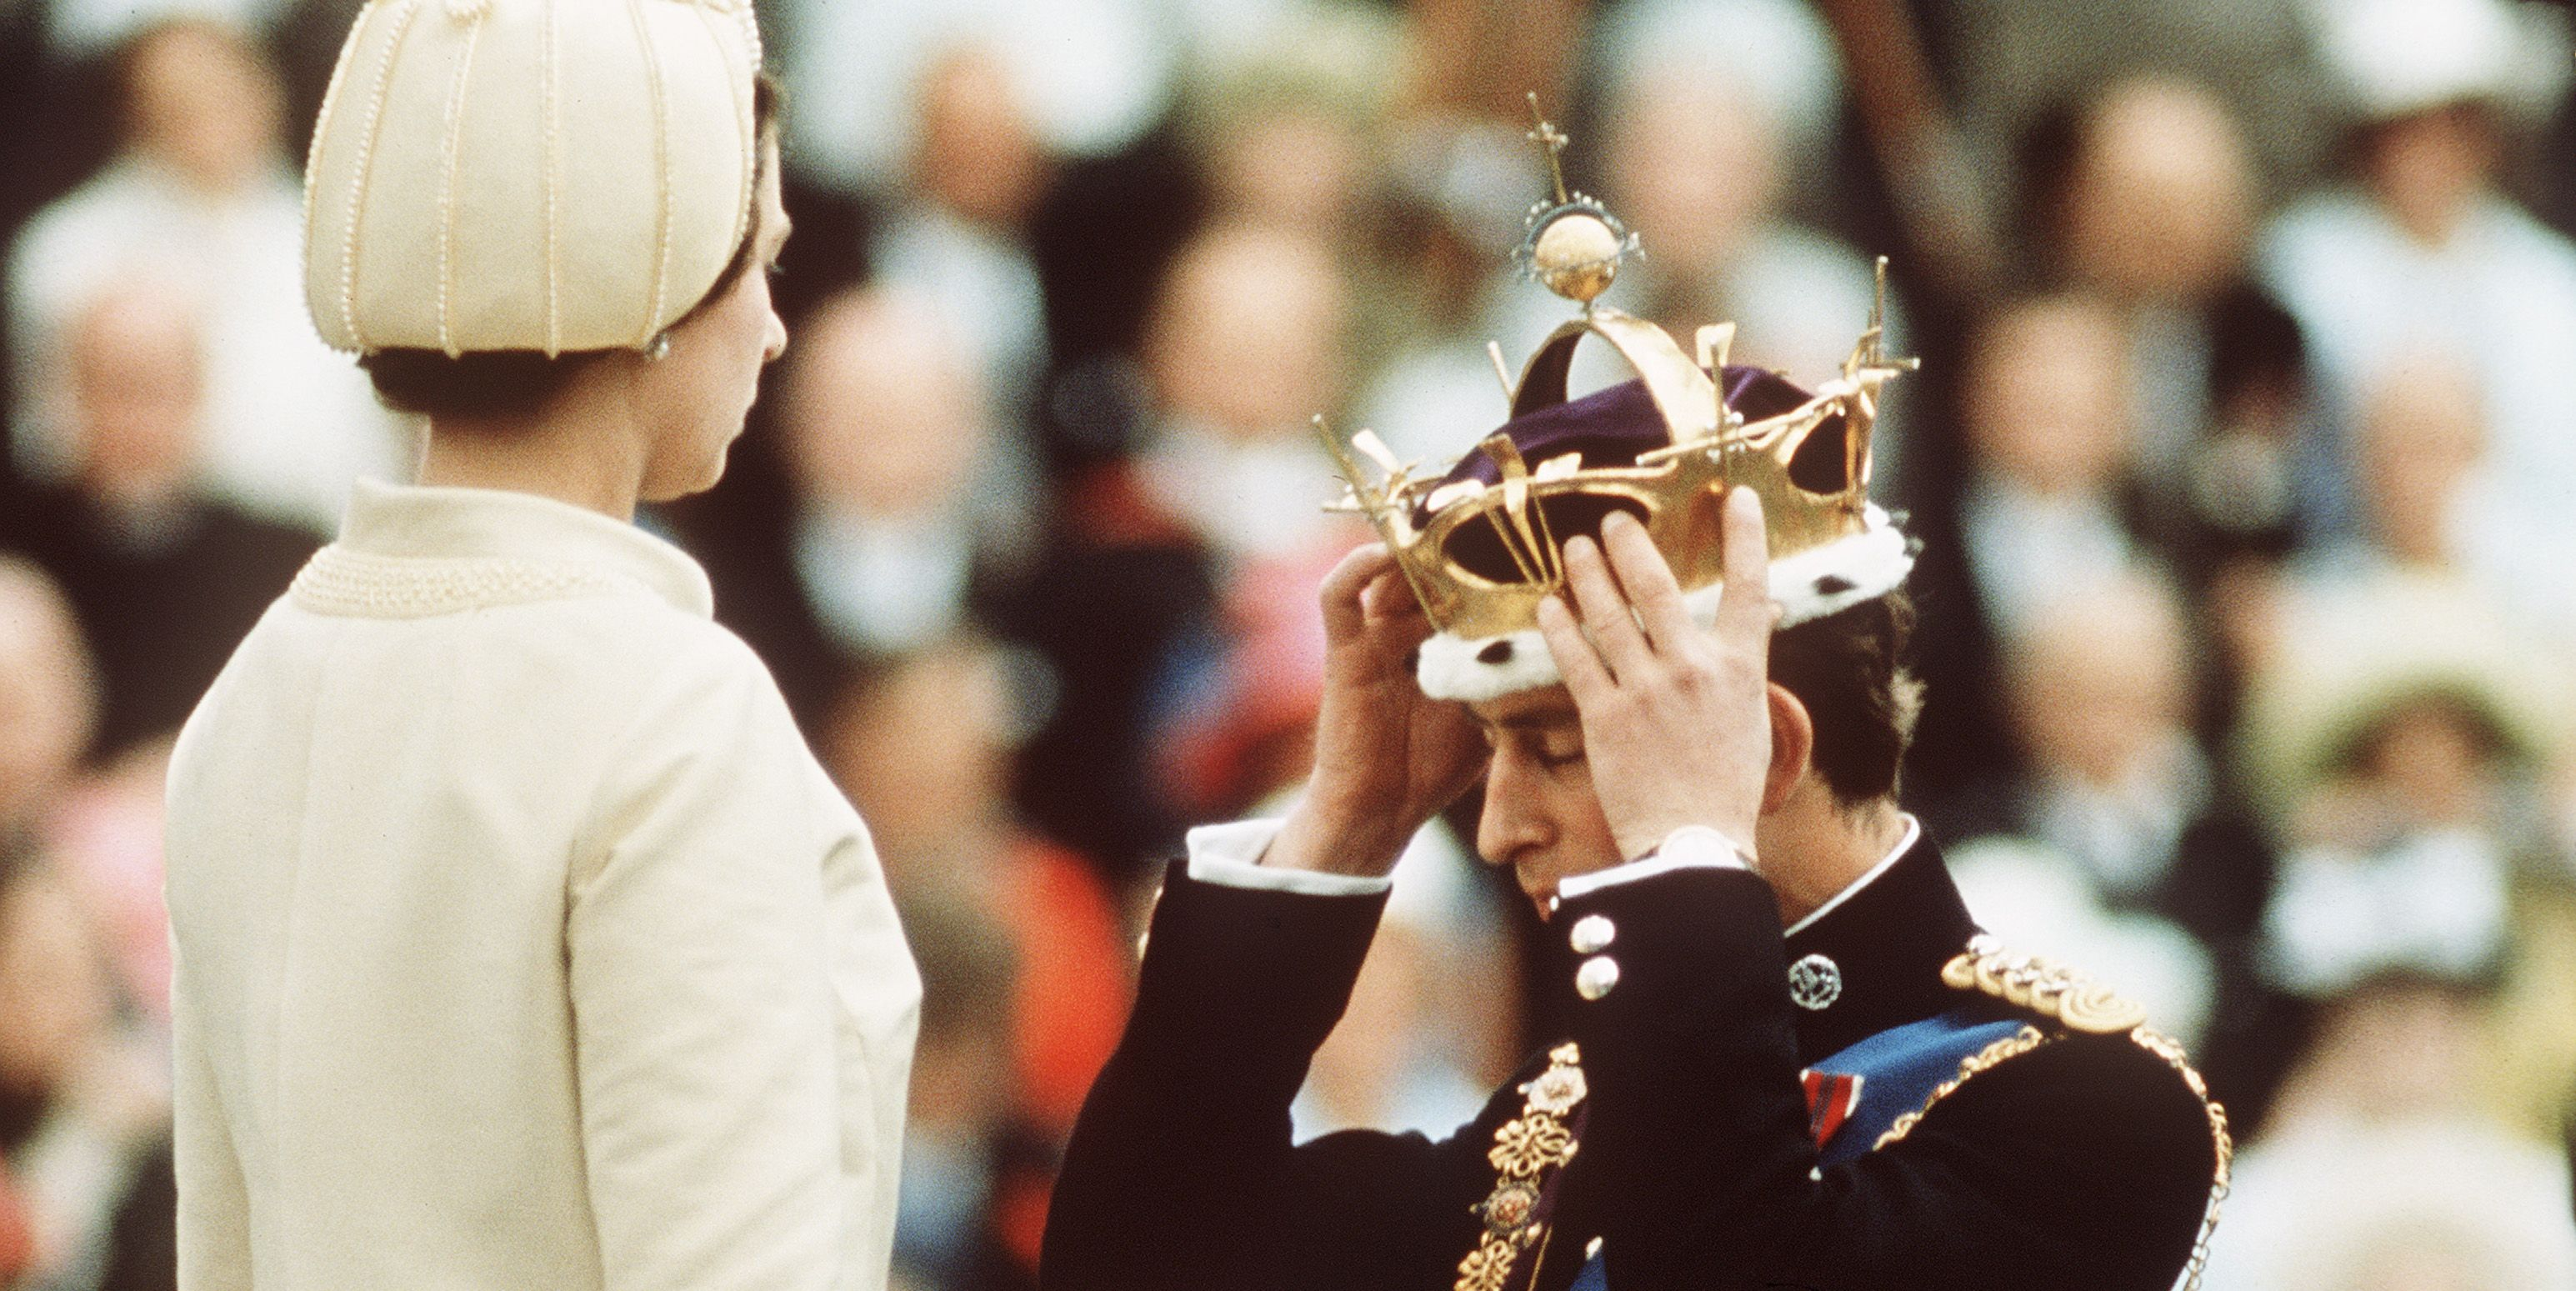 GBR: Queen Elizabeth II crowns Prince Charles, the Prince of Wales